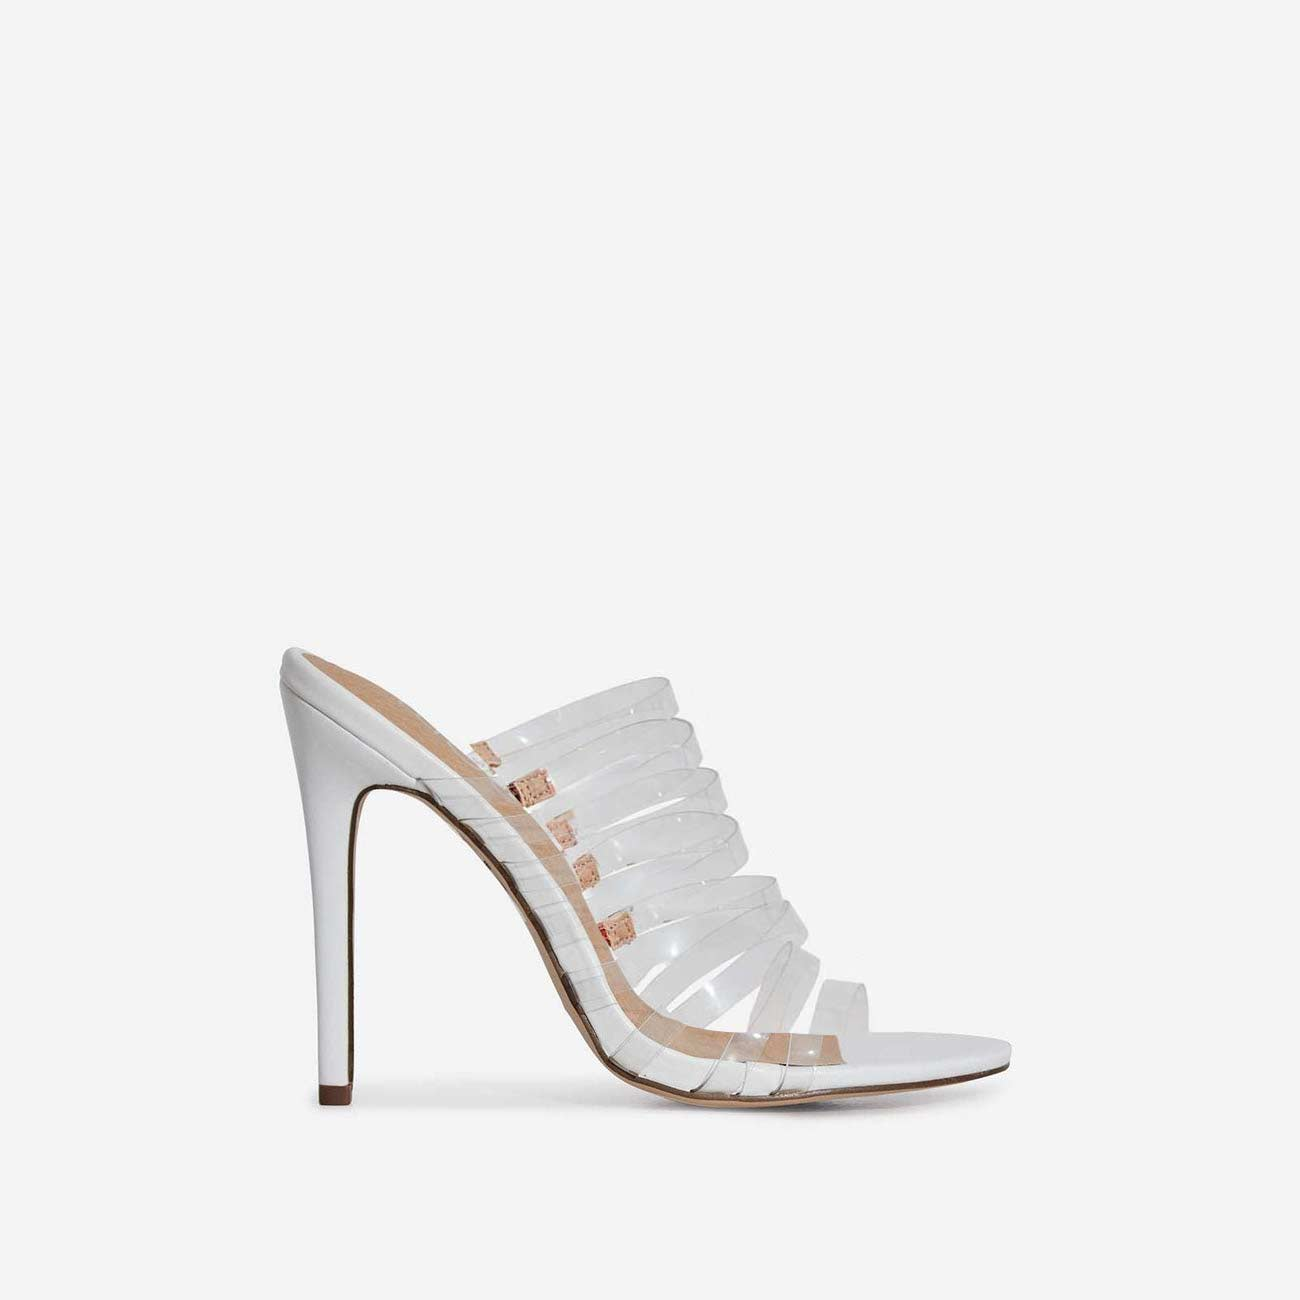 Abby Multi Strap Perspex Heel Mule In White Faux Leather